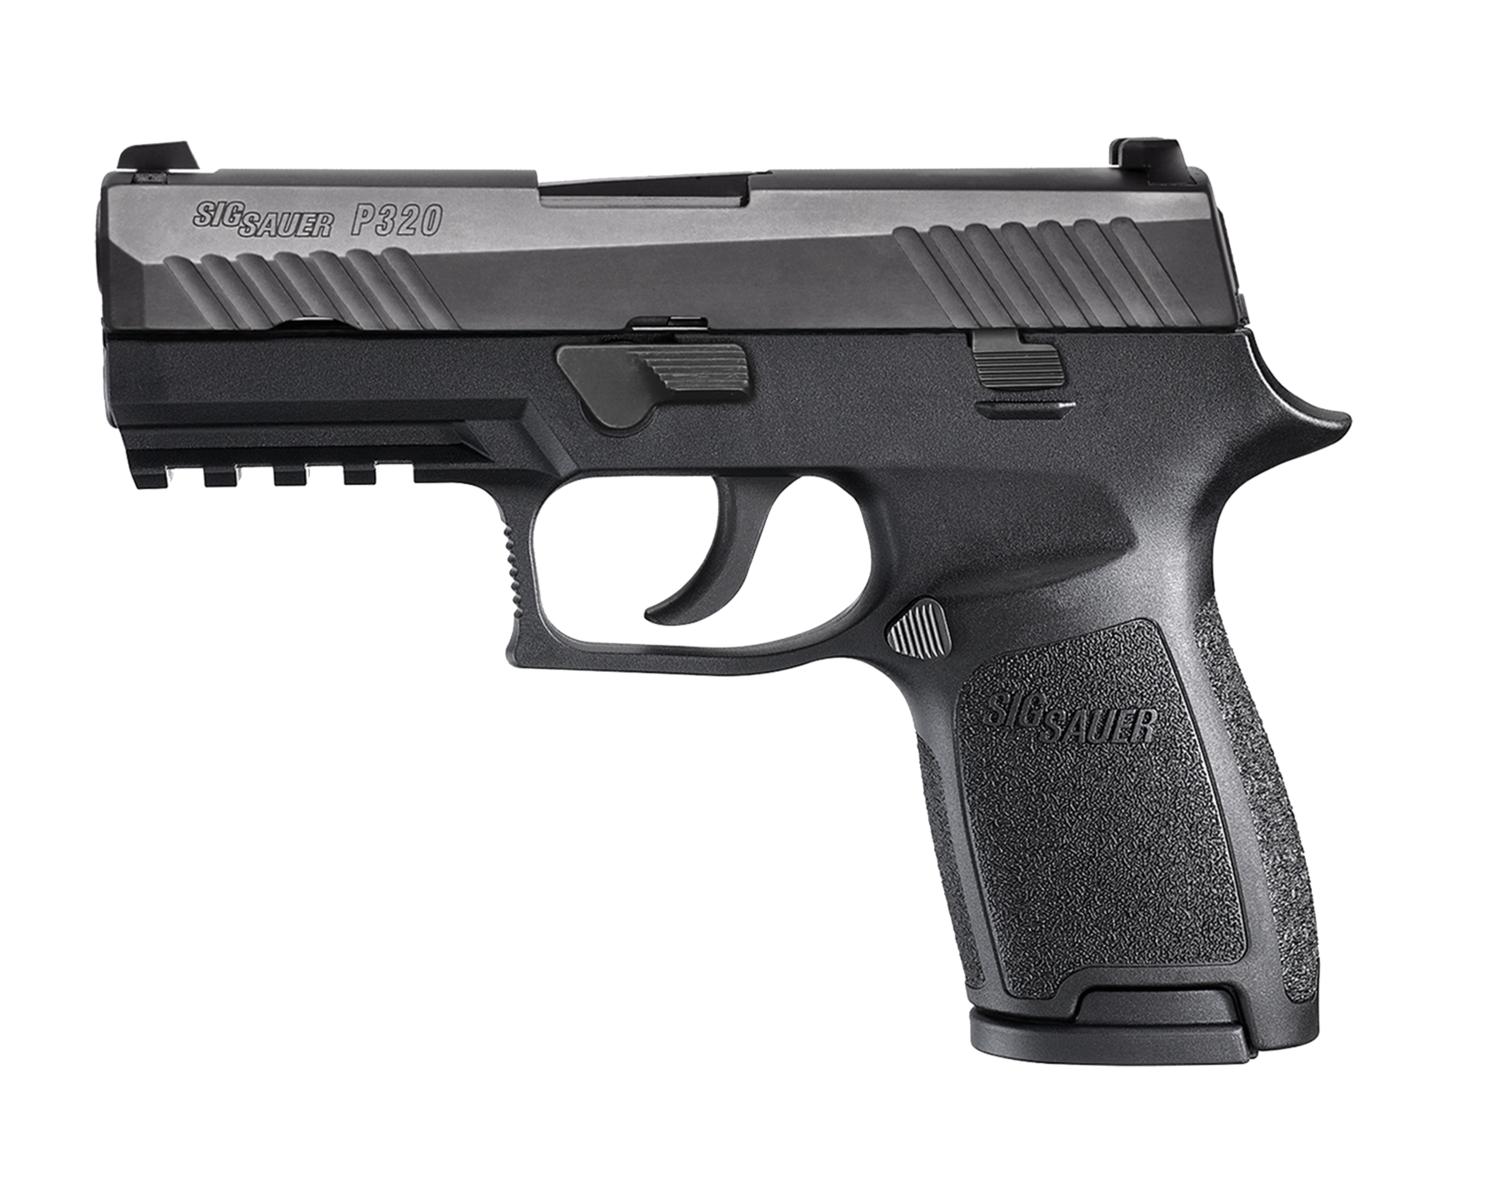 """80% Sig Sauer - P320 Carry 9mm Luger 3.9"""" 10+1 - 2 Mags -  Black Polymer Grip - Nitron Stainless Steel"""